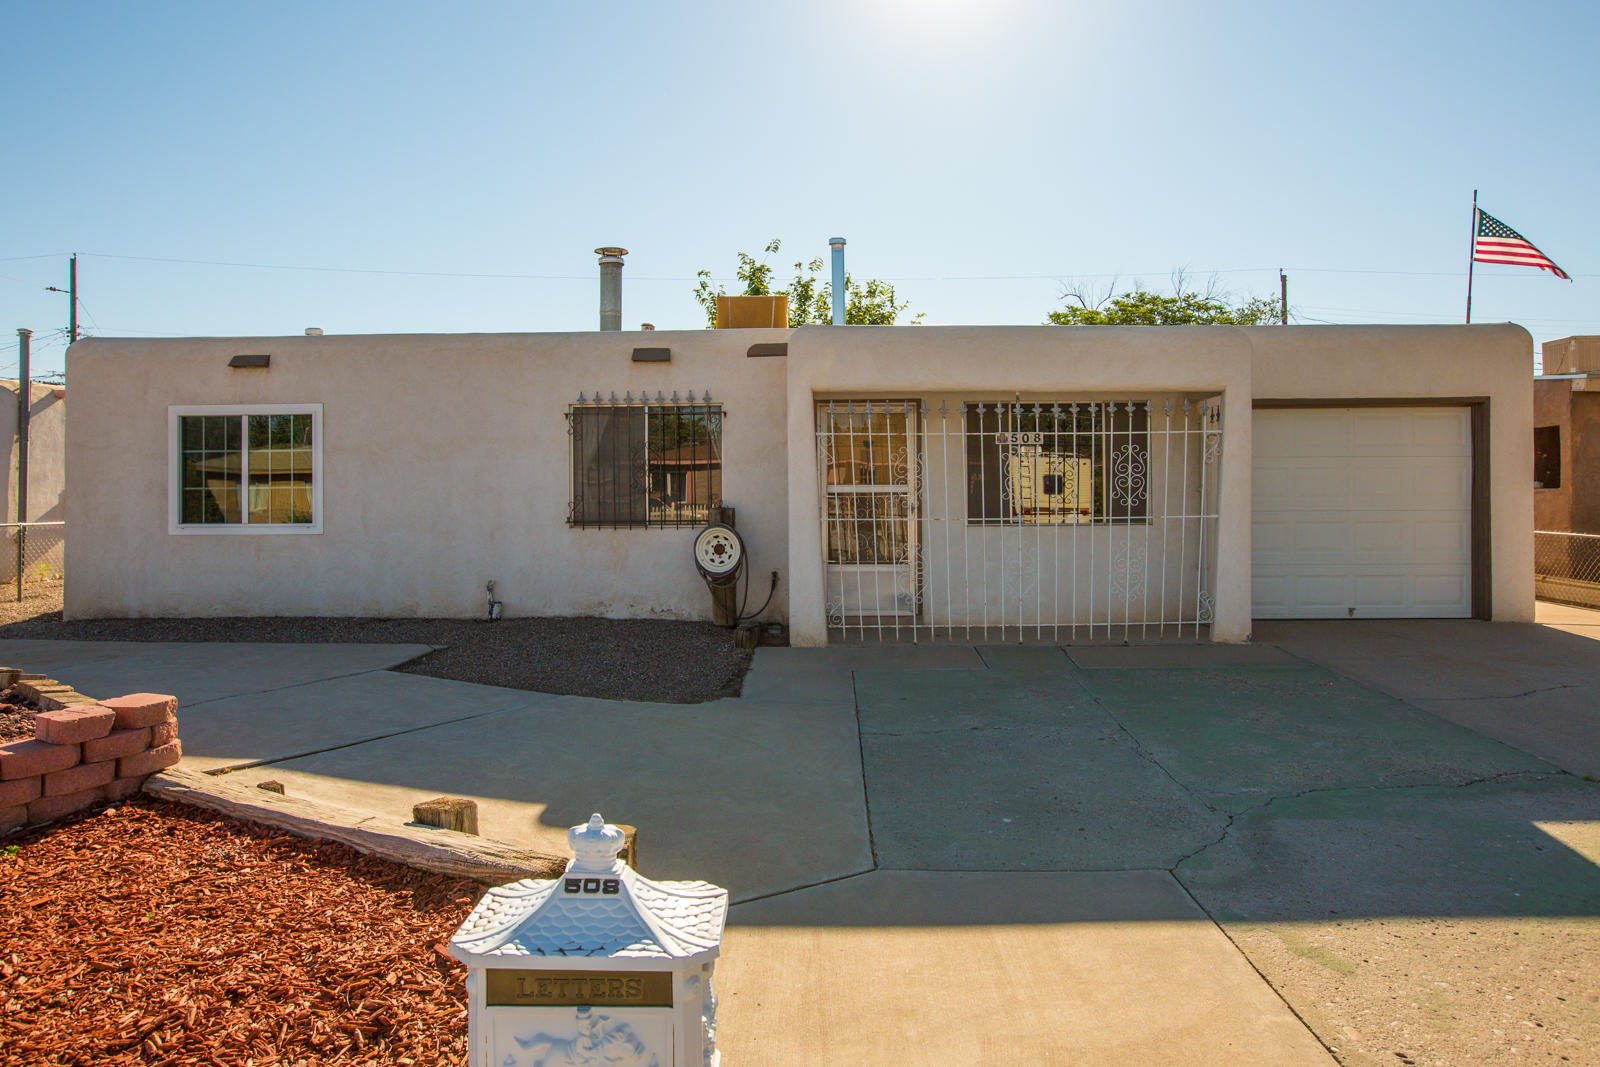 Great opportunity to own this house in a well established neighborhood. Convenient location just minutes from Coors & I40, the Bosque and Old Town! This two bedroom, one bath home features a spacious kitchen with newer appliances, cozy wood stove in the living room, one car garage with additional parking out front, and a gated driveway. A private pool in the backyard make it perfect for enjoying the summer!